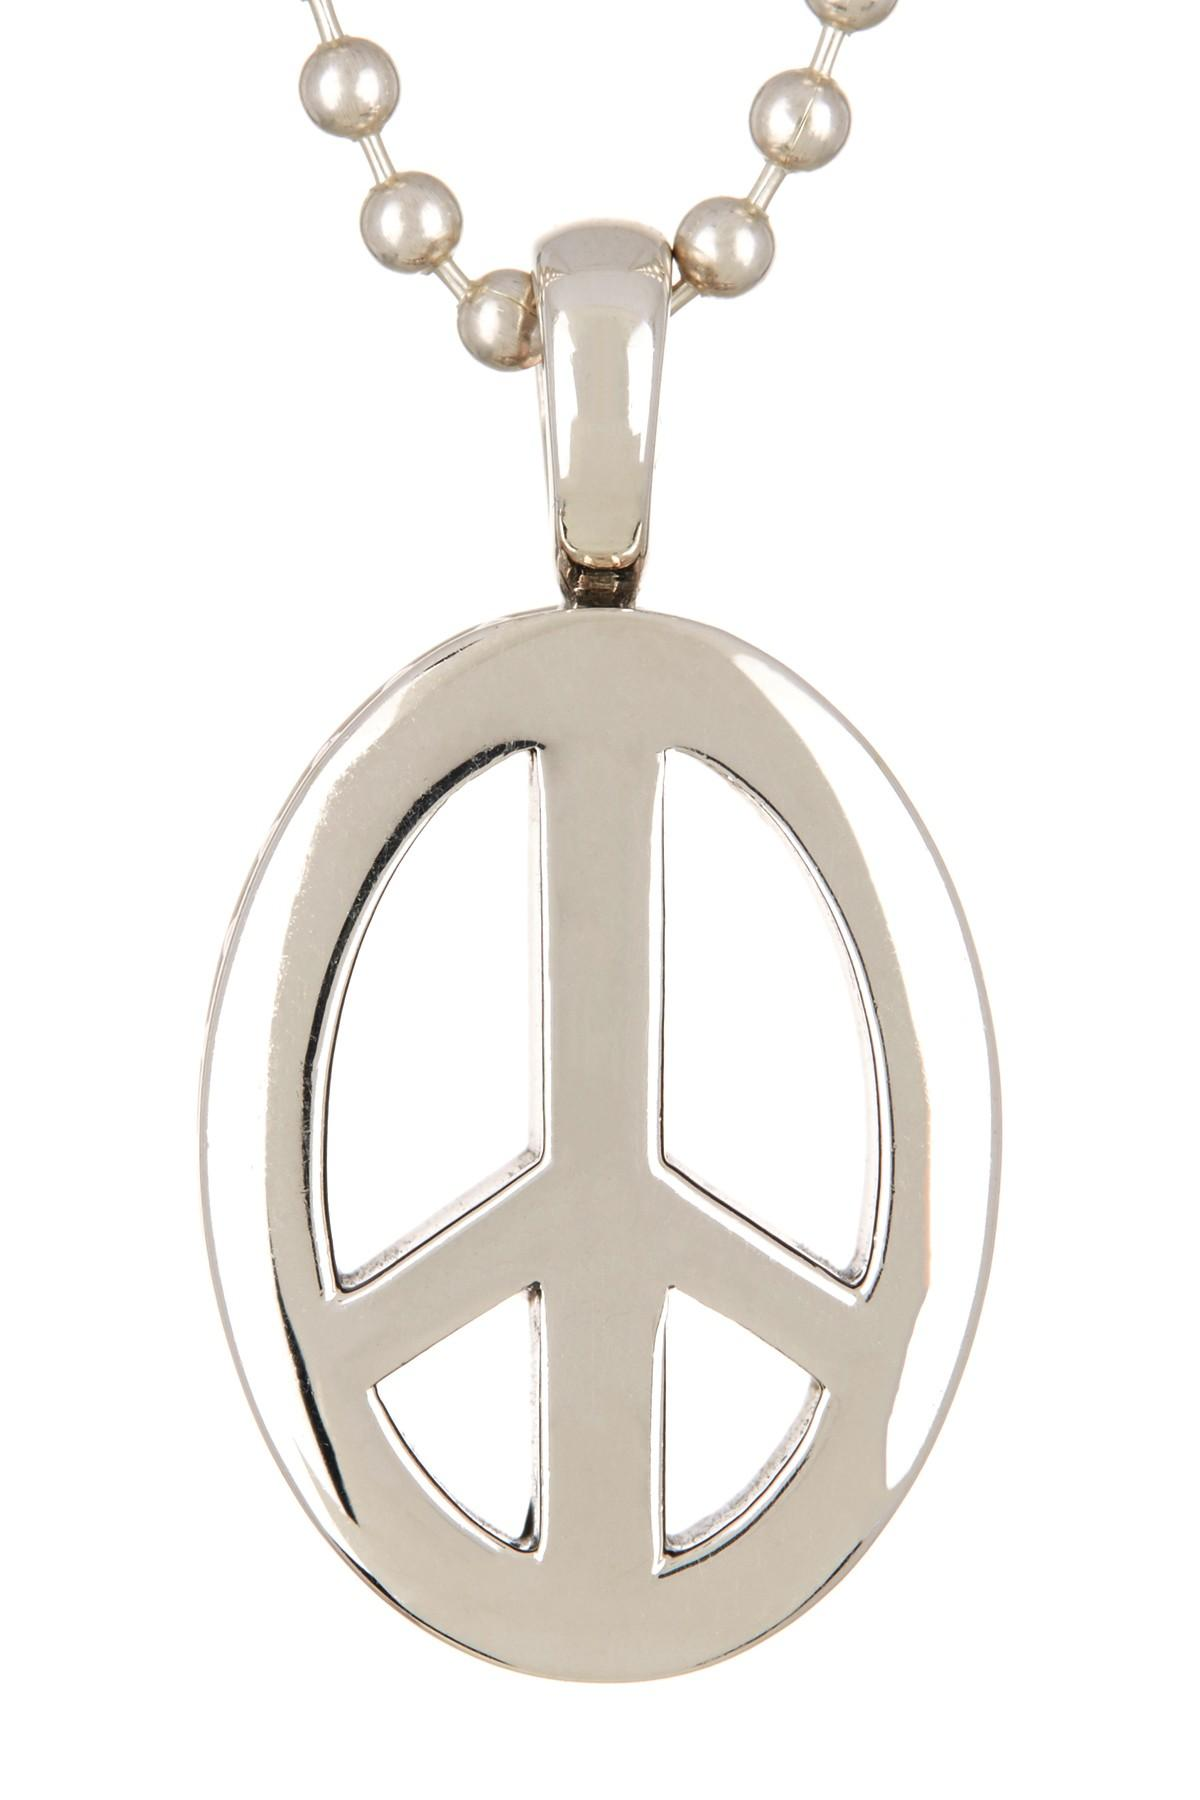 Lyst lagos sterling silver peace sign pendant necklace in metallic gallery buycottarizona Gallery